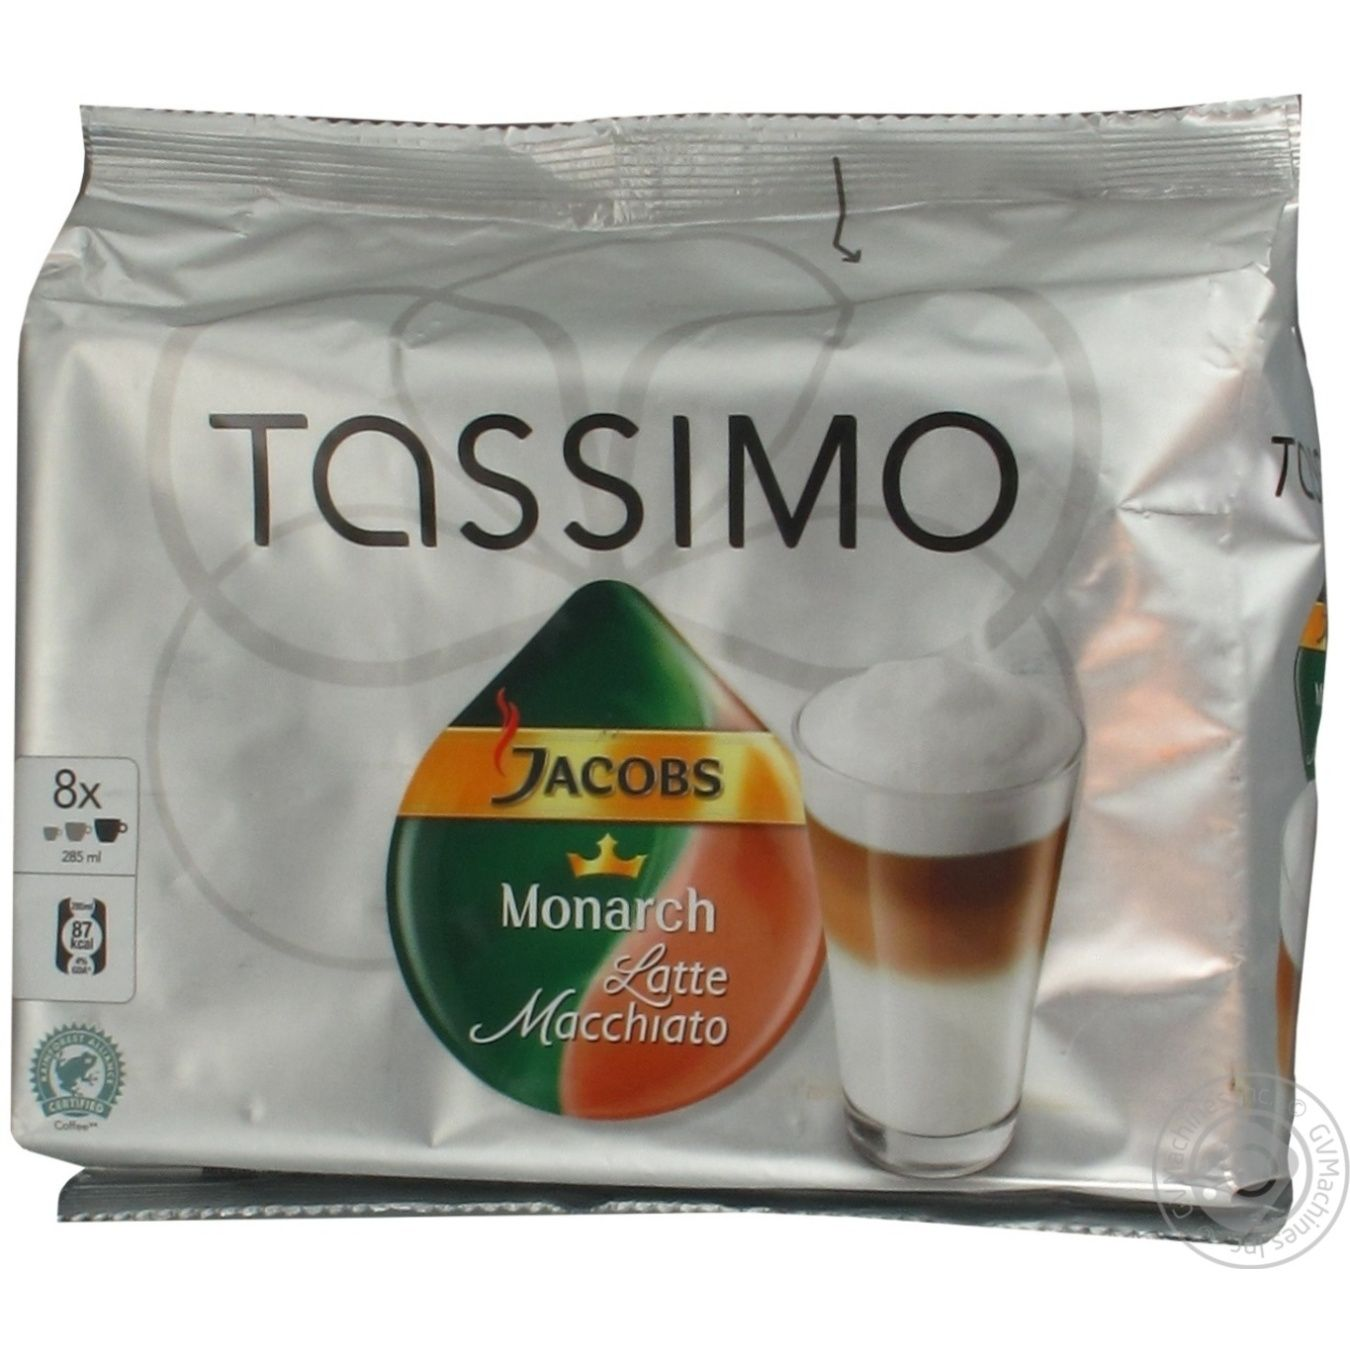 Natural roasted ground coffee Jacobs Monarch Tassimo Latte